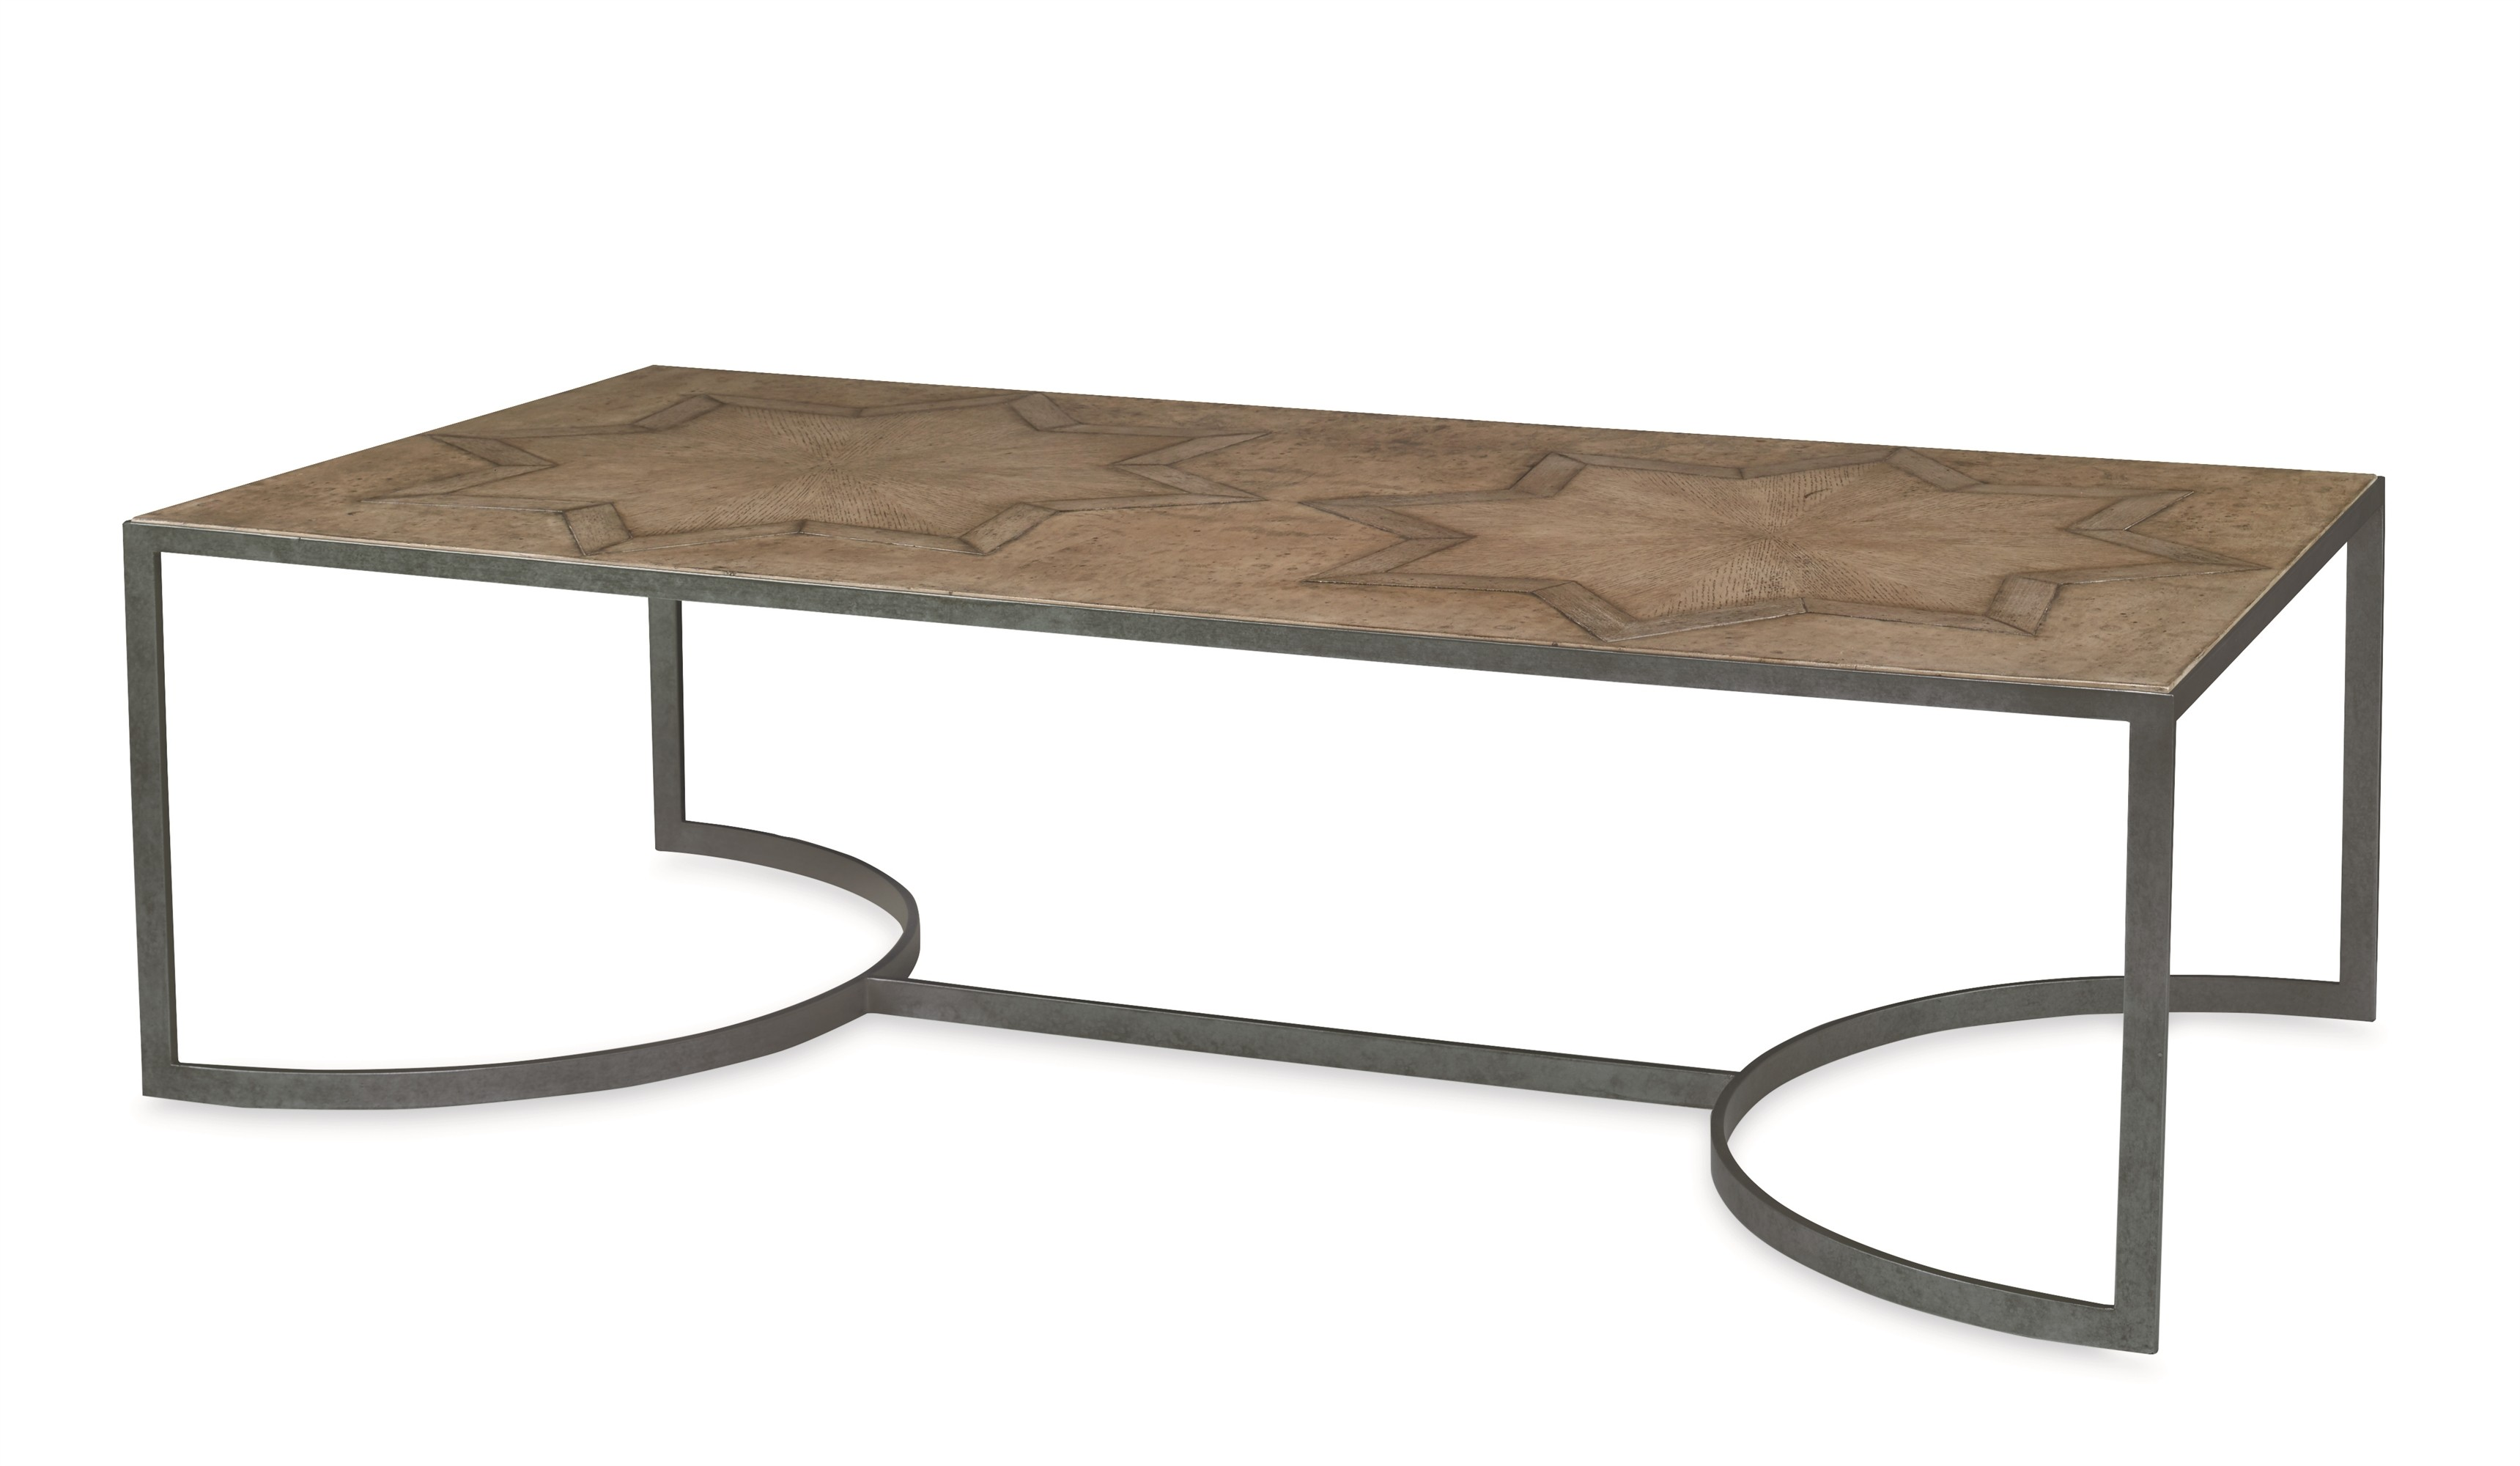 Casa Bella Starburst Cocktail Table - Timber Gray Finish